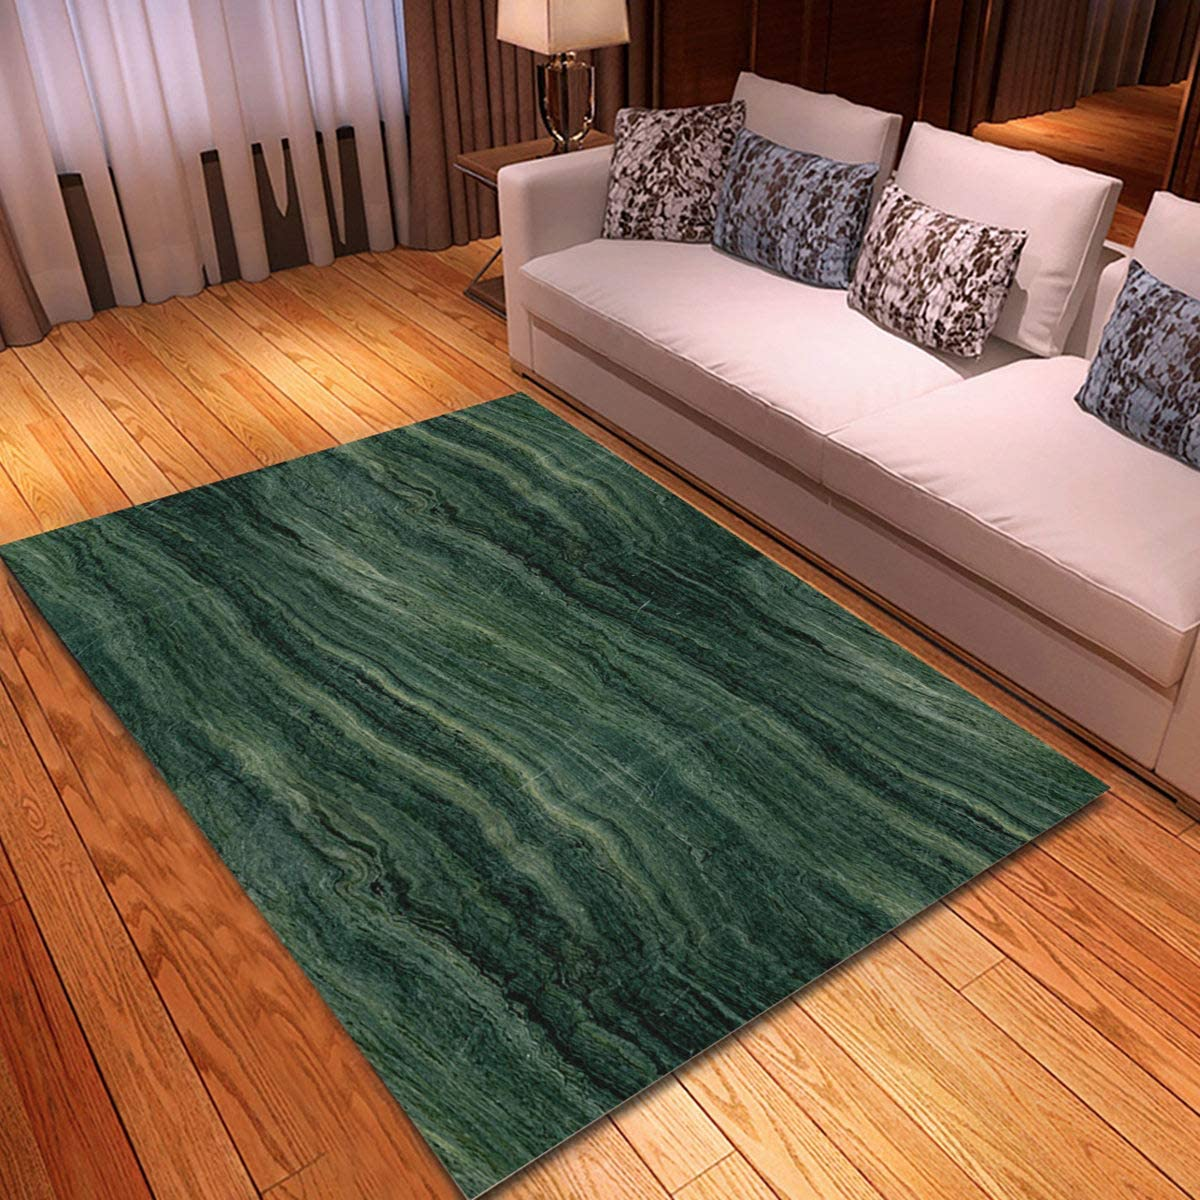 Rouihot Non Slip Area Rug 2 X 3 Stone Green Marble Abstract Pattern Modern Emerald Onyx Rock Rugs Carpet For Classroom Living Room Bedroom Dining Kindergarten Room Kitchen Dining